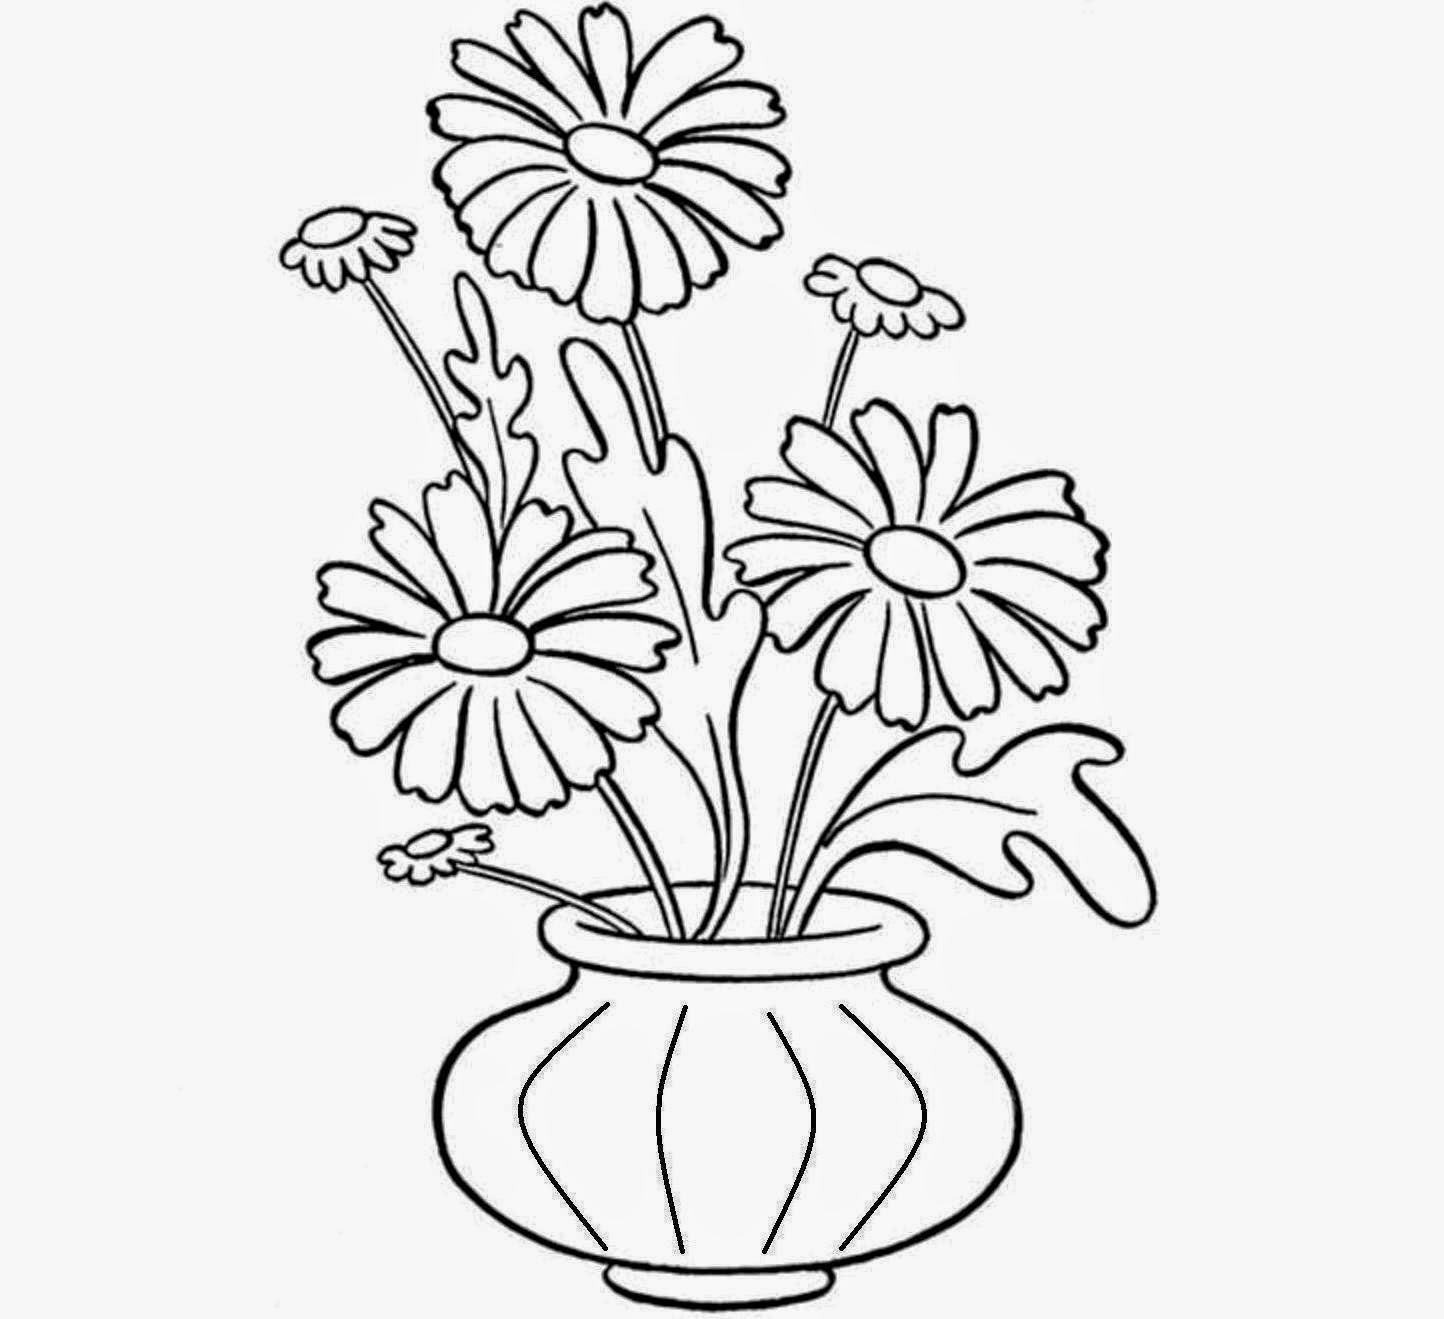 1444x1319 Flower Pot Draw Emages Pot Plant Clipart Line Drawing Flower